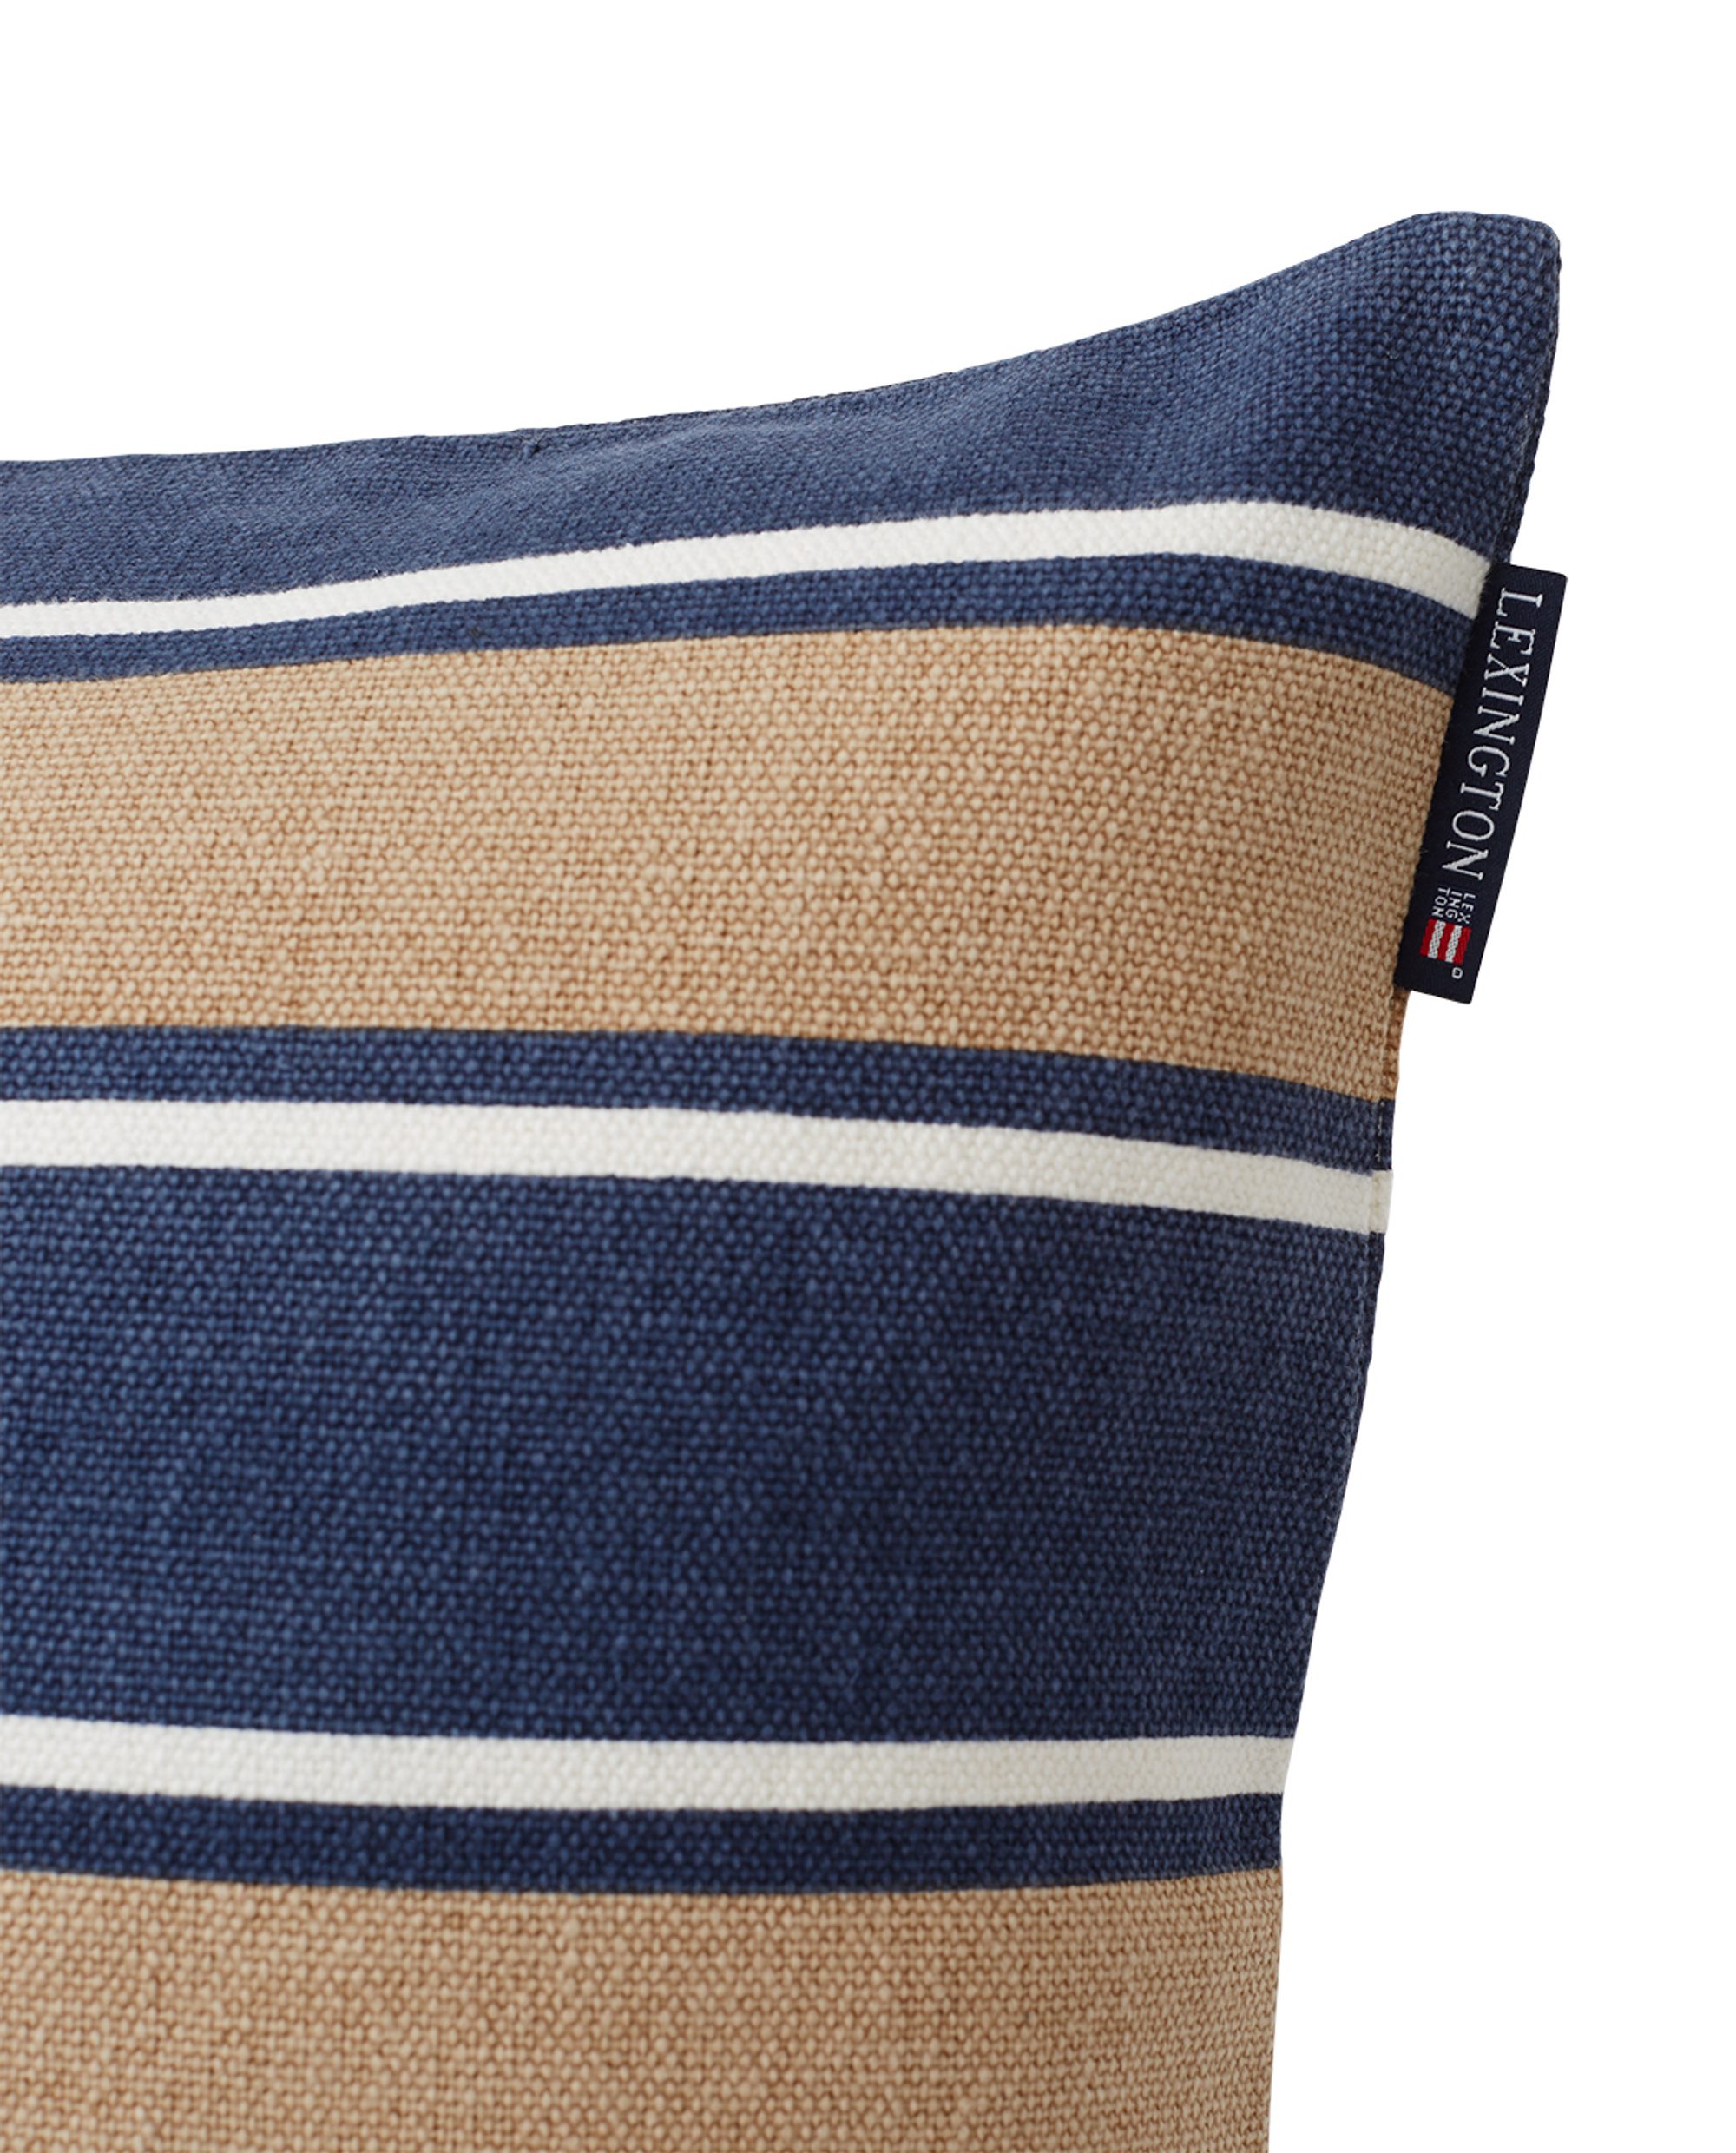 Printed Stripes Recycled Cotton Canvas Pillow Cover, Beige/Dark Blue